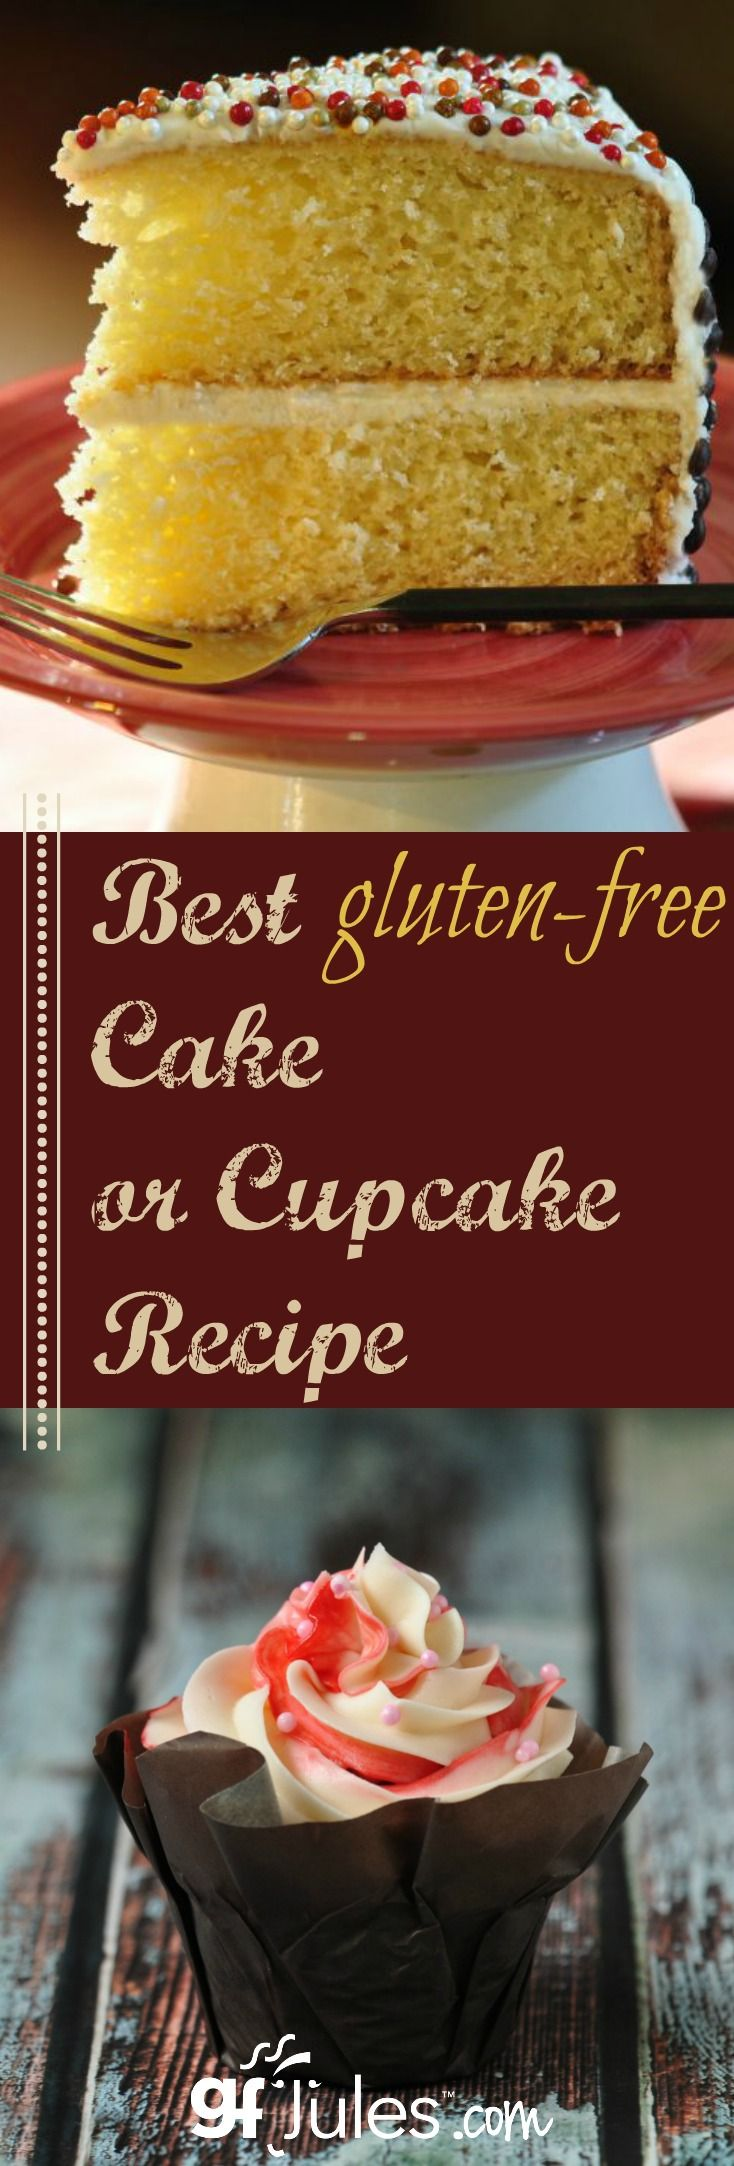 Lactose free cake recipes easy